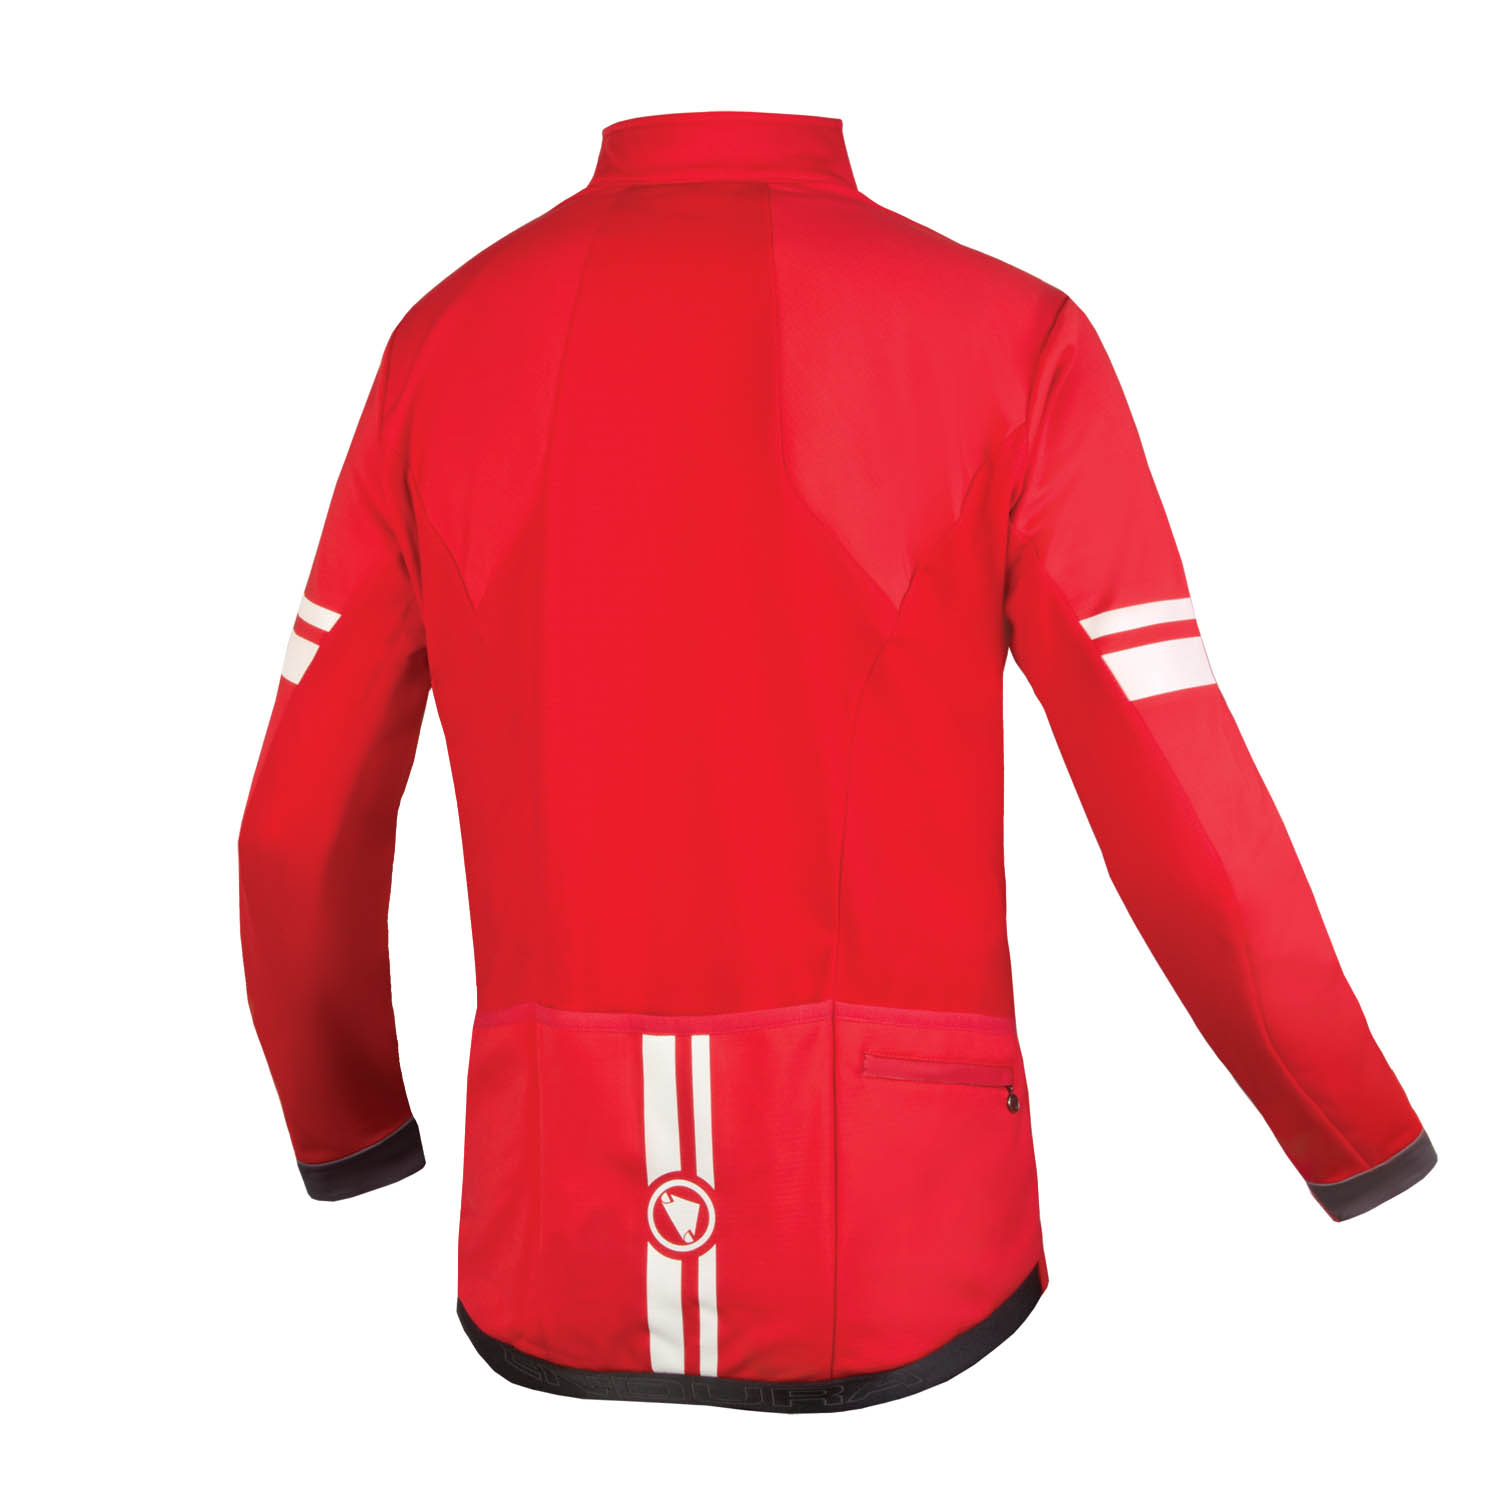 Pro SL Thermal Windproof Jacket back